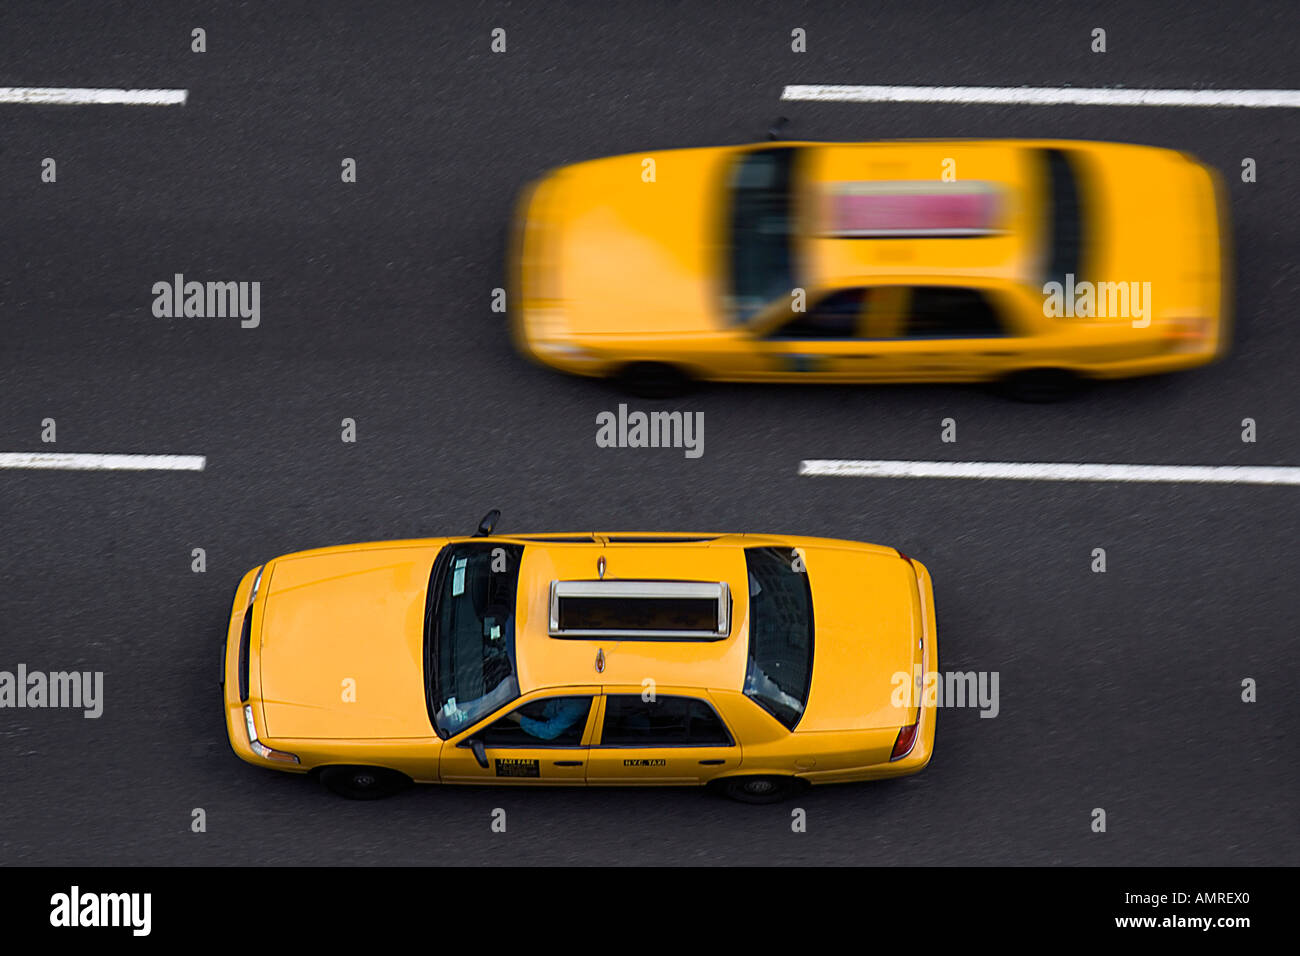 Taxis on 8th Avenue, New York City, New York, USA Stock Photo